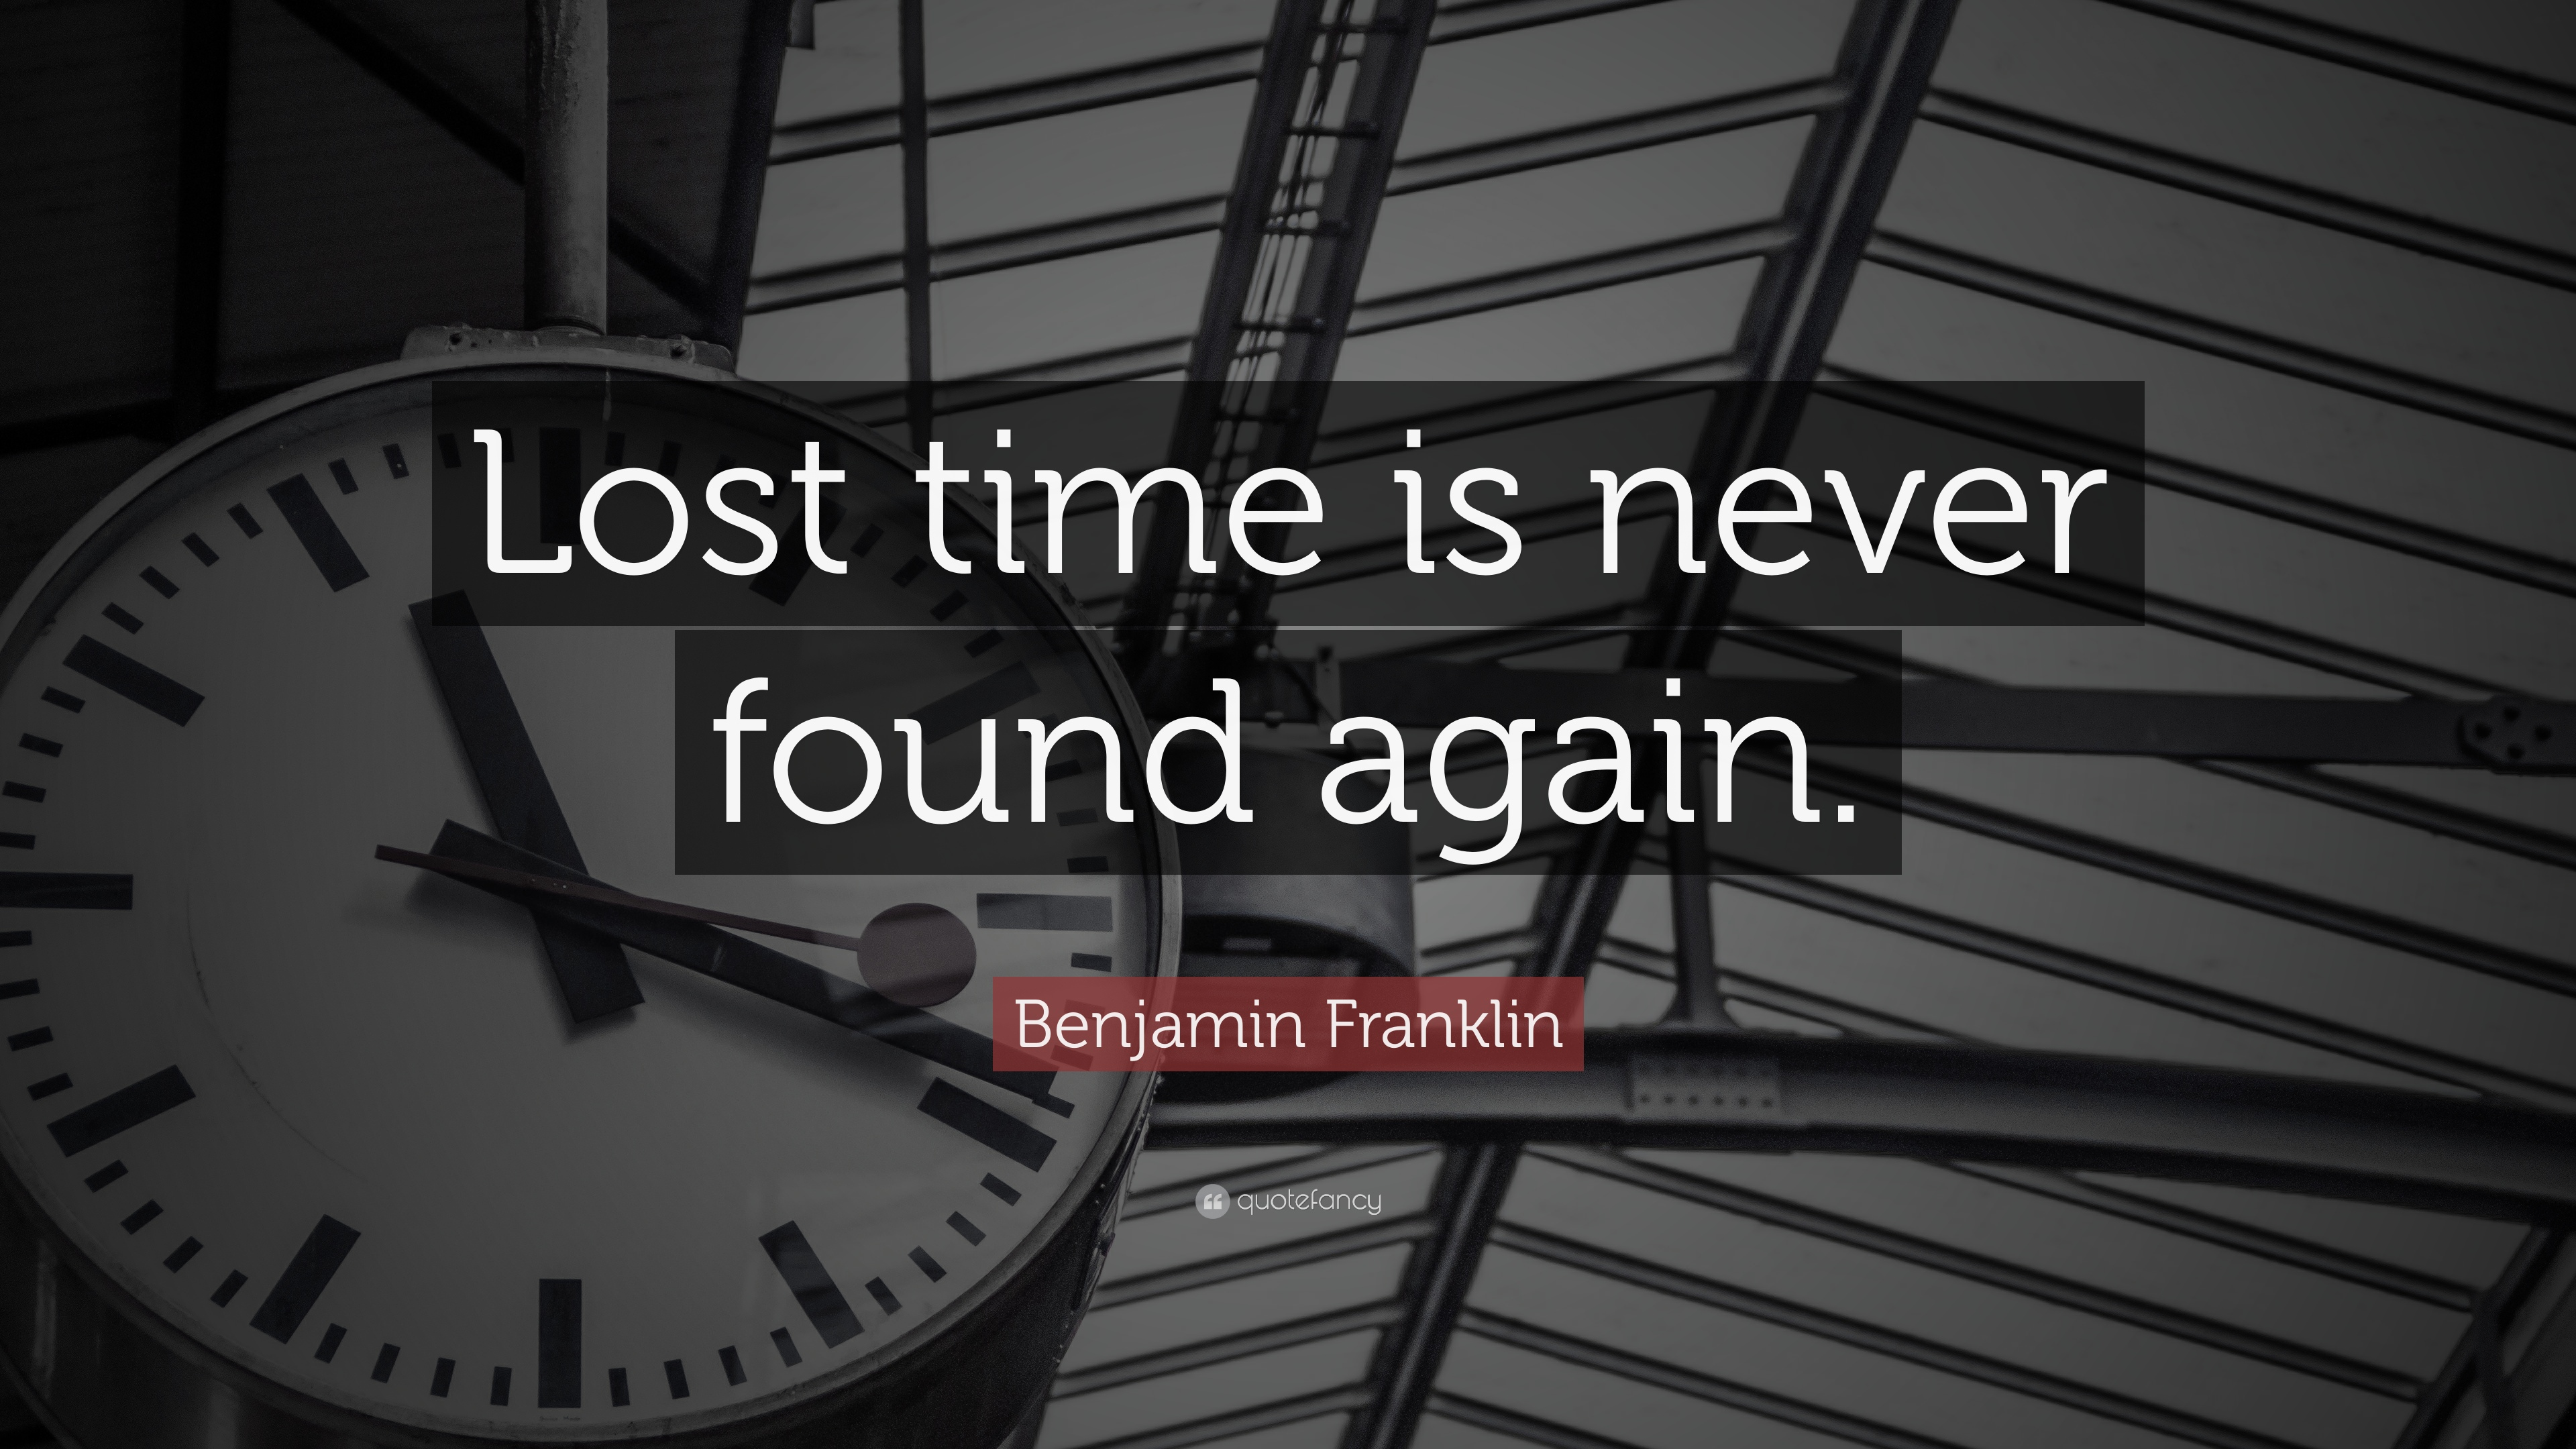 benjamin franklin quote lost time is never found again 24